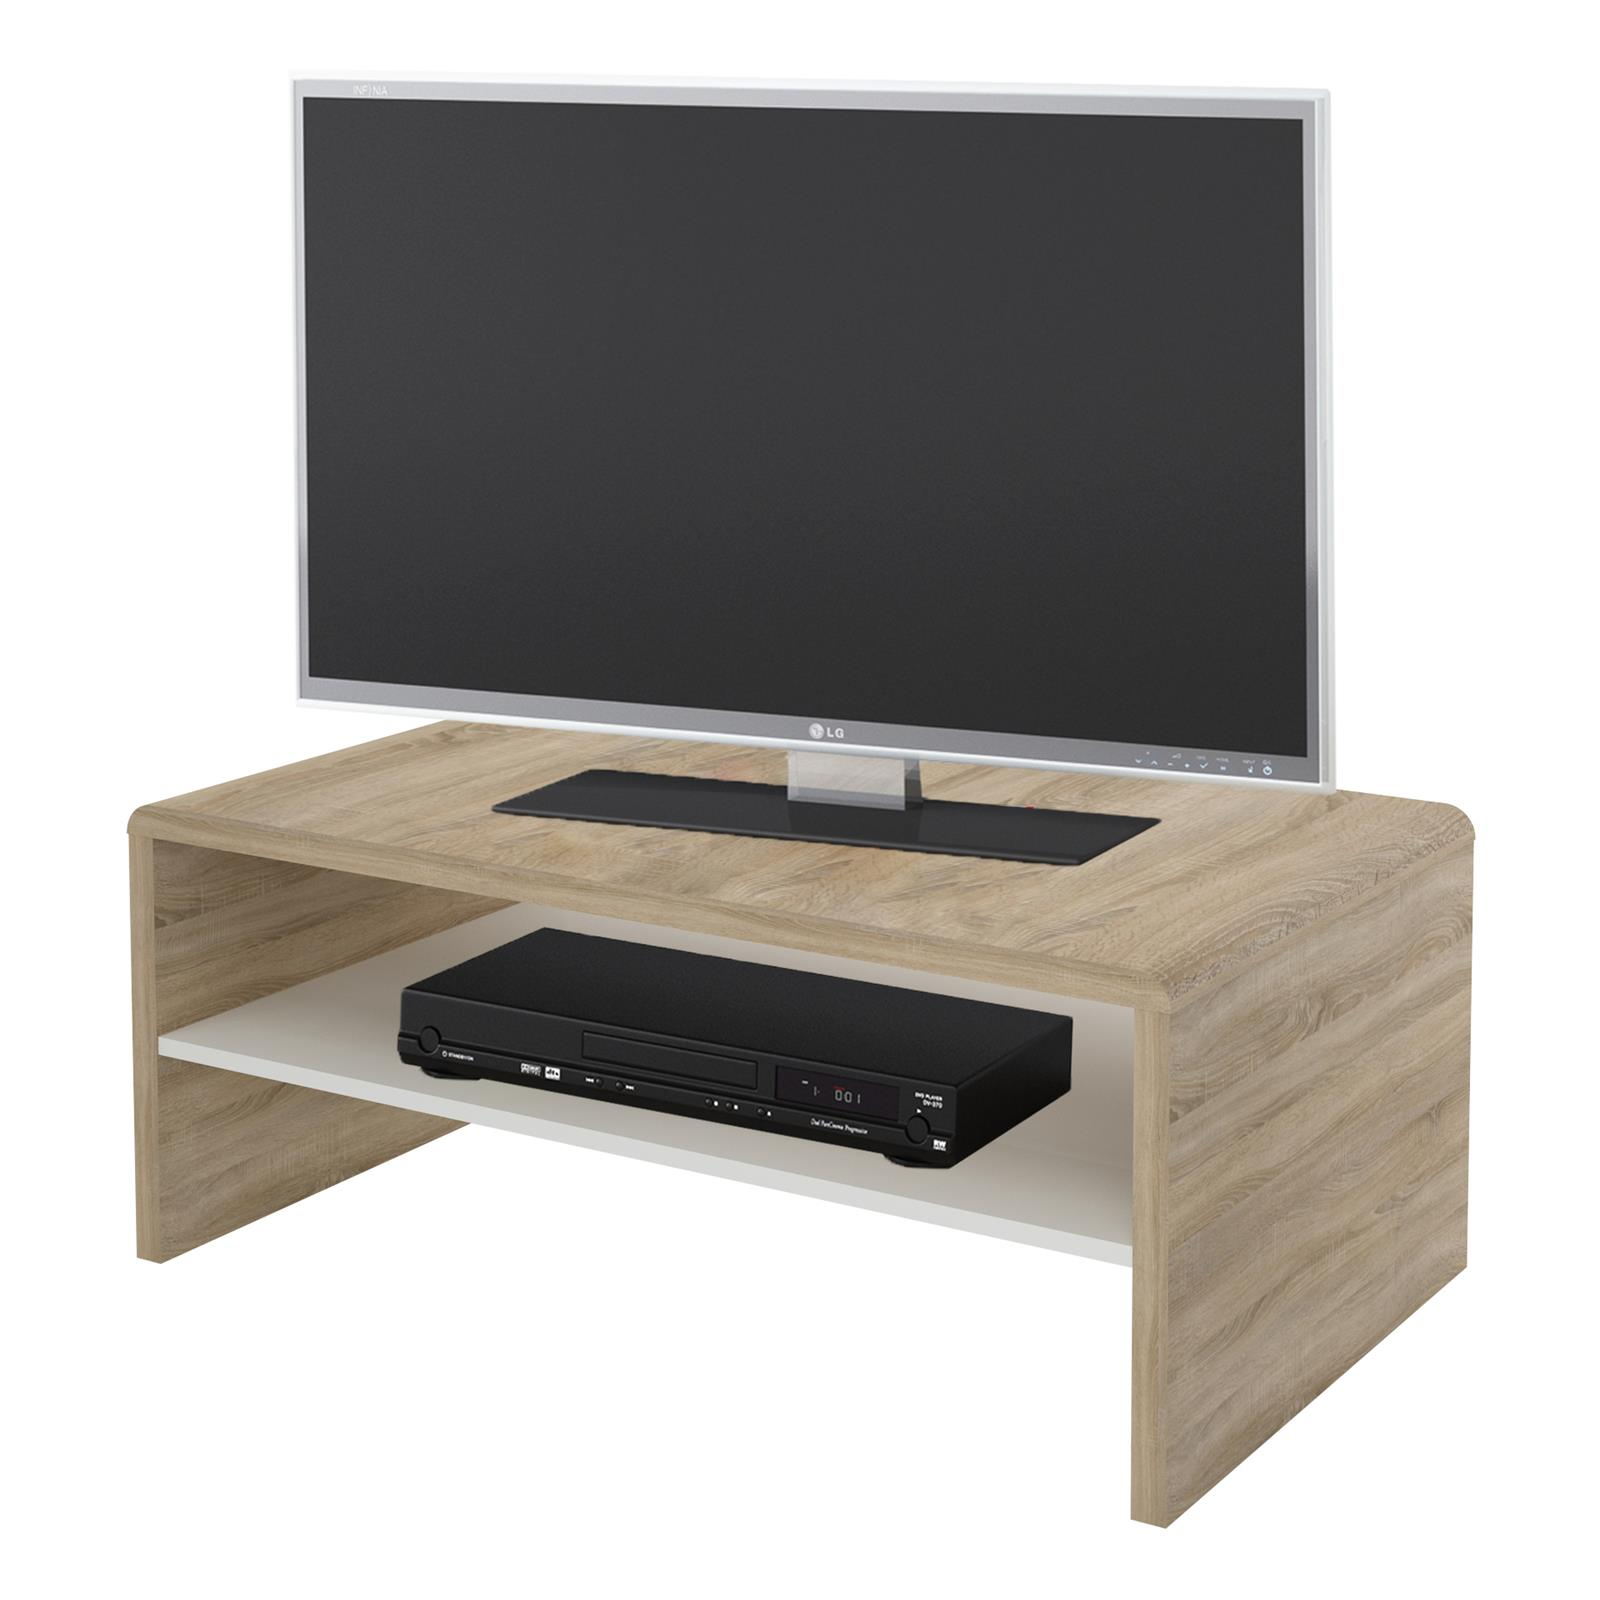 Lowboard Eiche Sonoma Trendy Tv Lowboard Pictures To Pin On  # Meuble Tv Arena